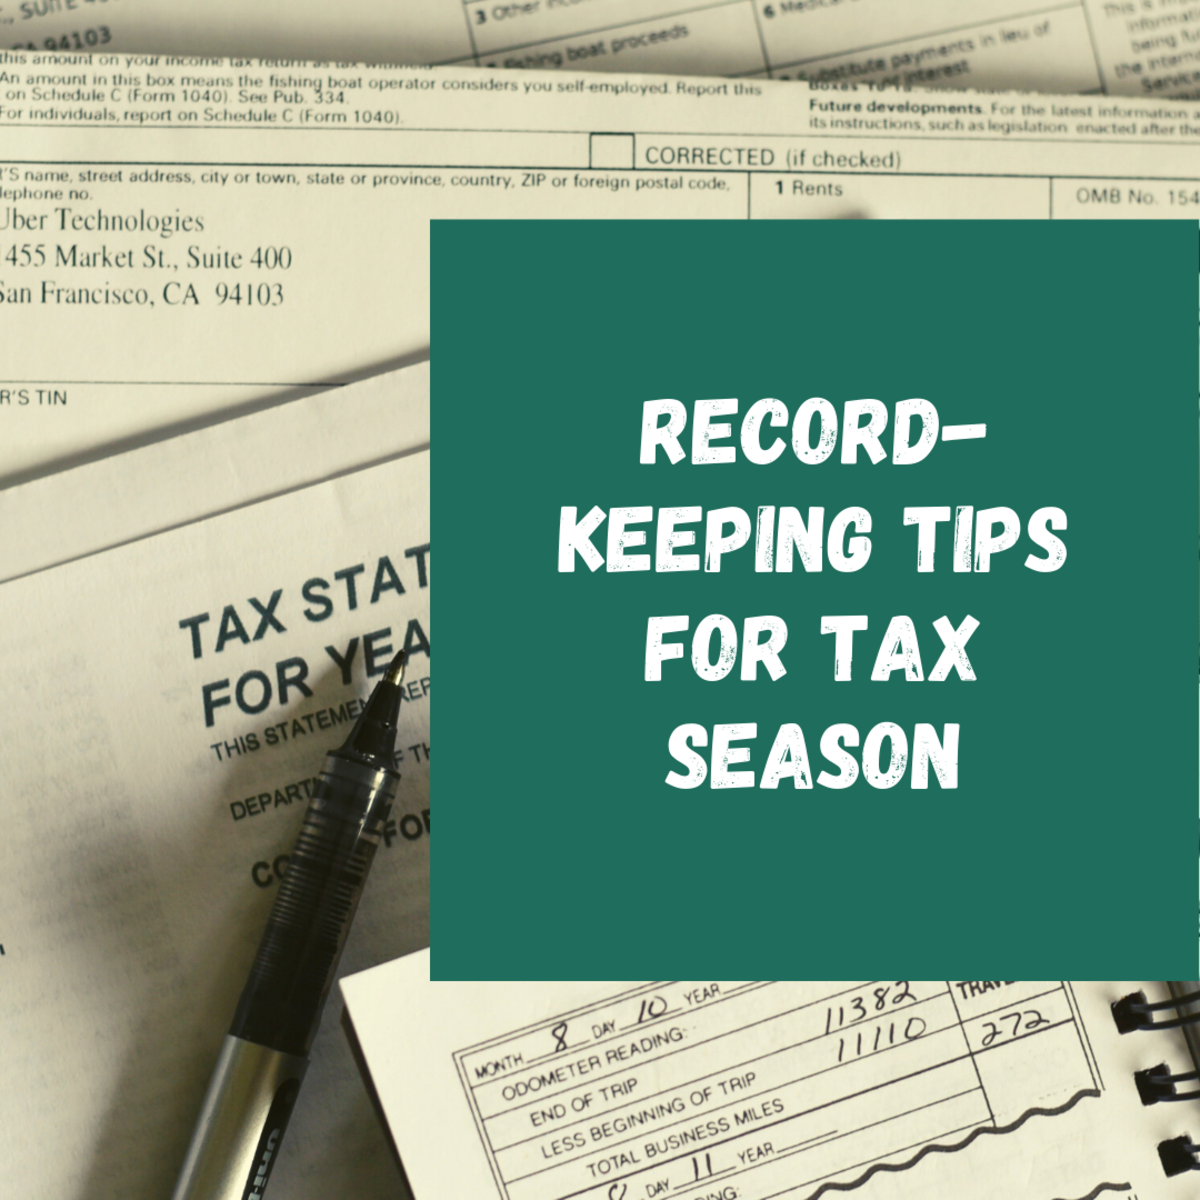 These tips will help you get through tax season without the usual pain.